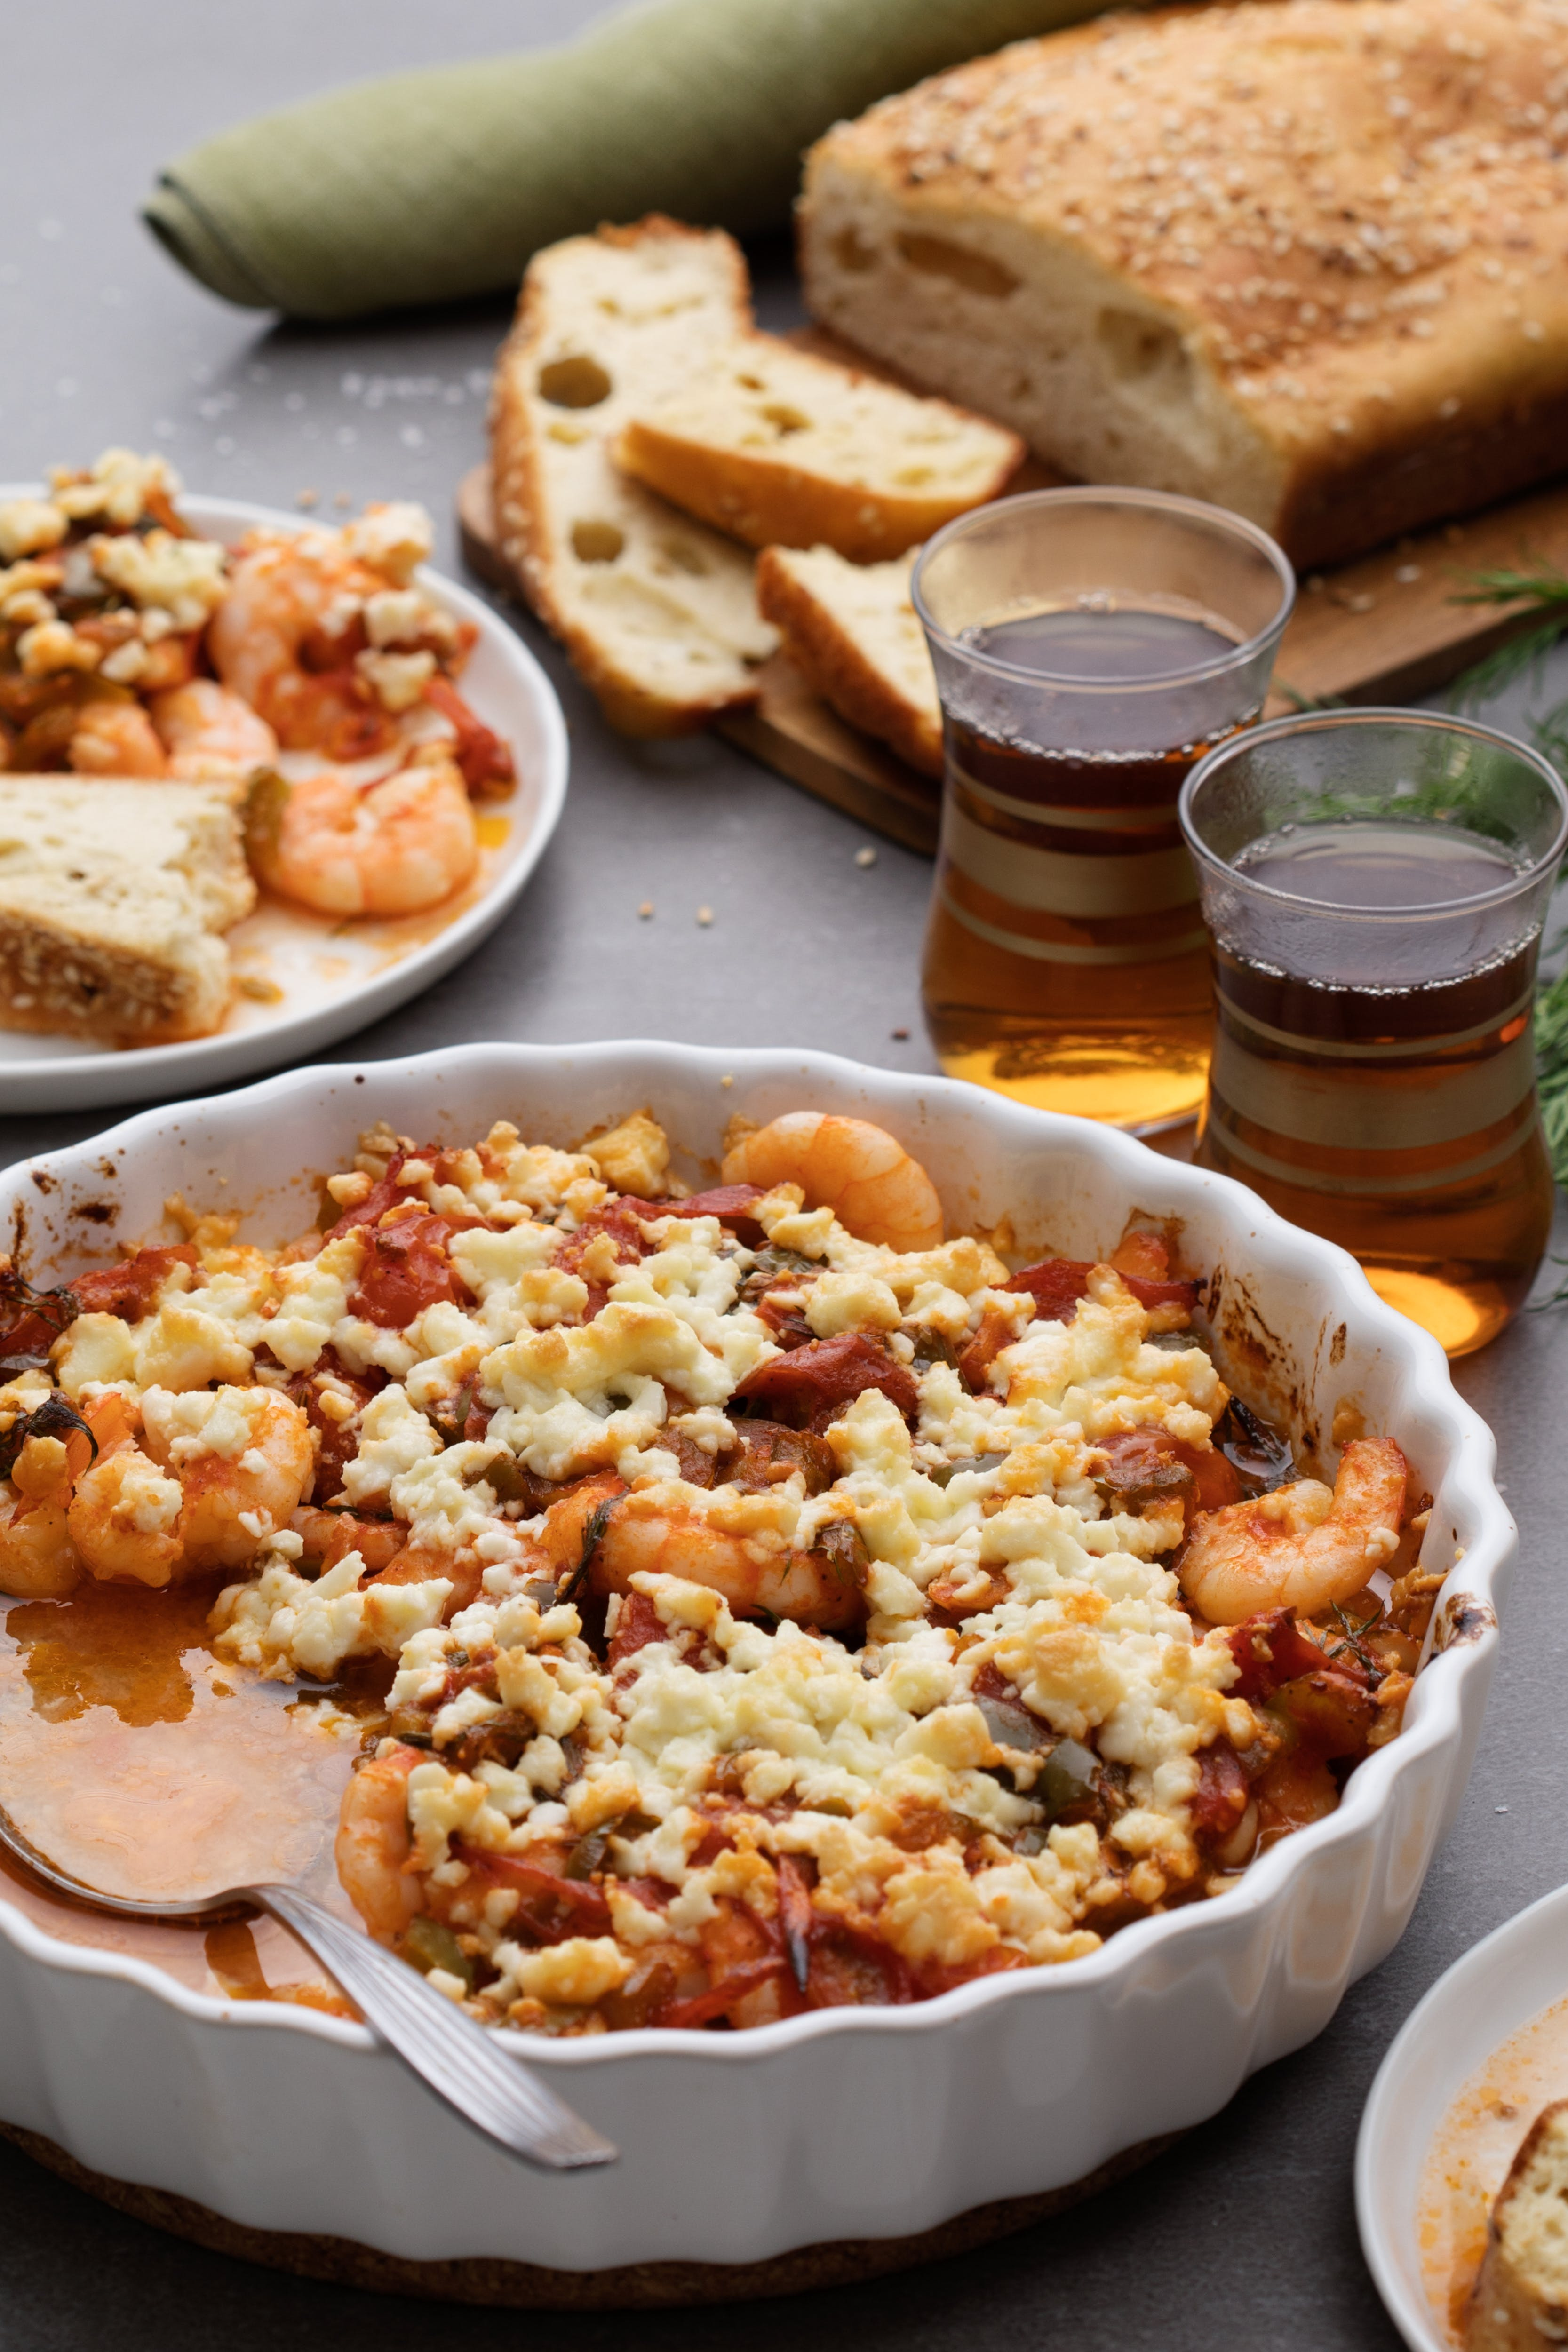 Turkish baked shrimp with sesame bread